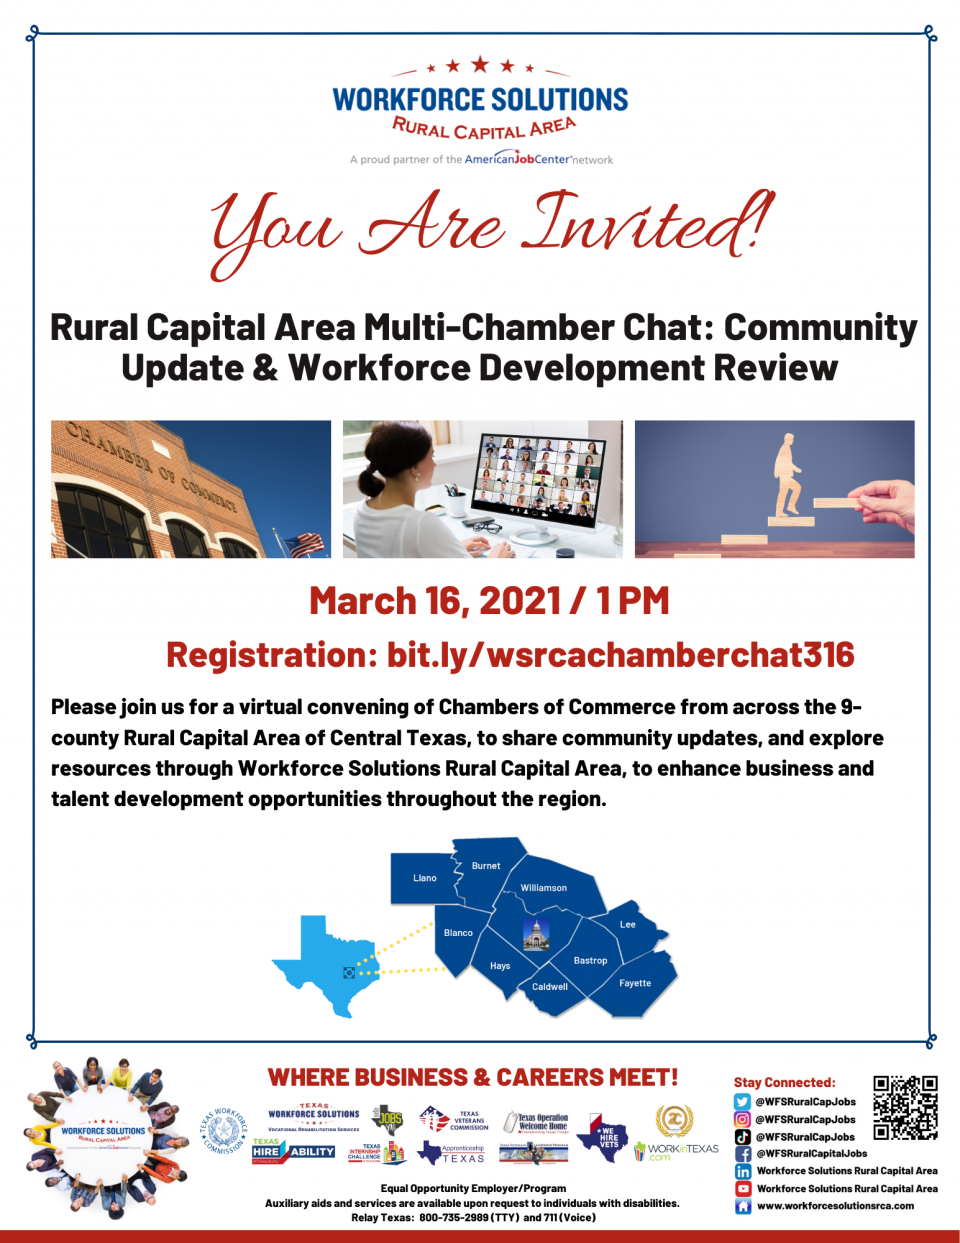 Workforce Solutions Rural Capital Area to Host Multi-Chamber Chat